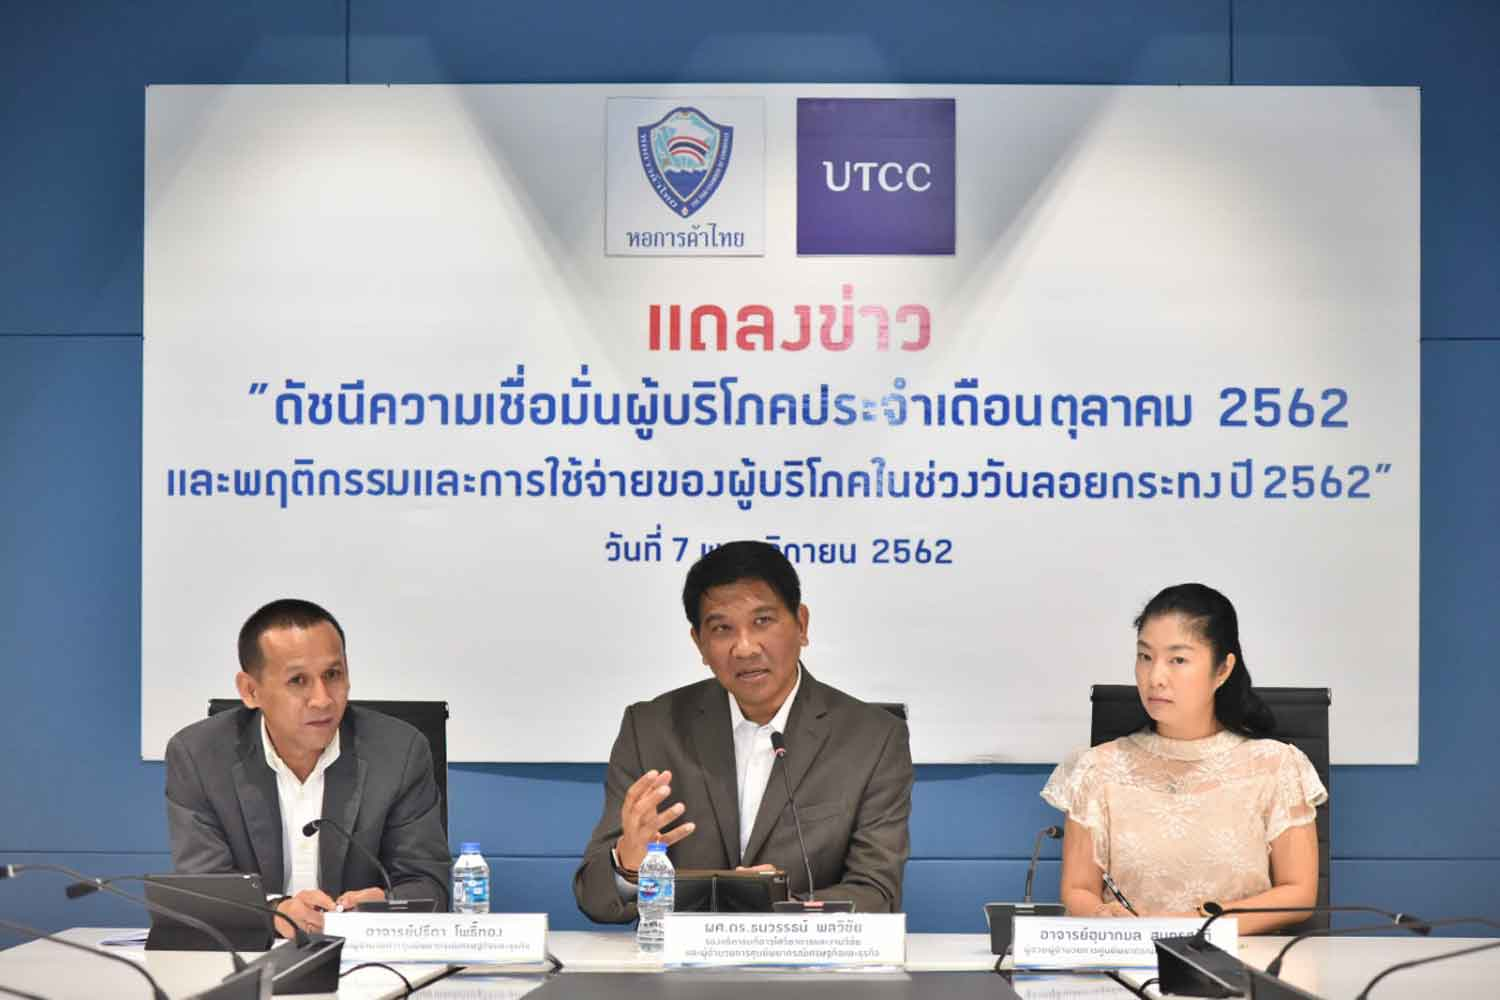 Thanavath Phonvichai, vice-president of the University of the Thai Chamber of Commerce, announces the consumer confidence index in Bangkok on Thursday. (Photo supplied)